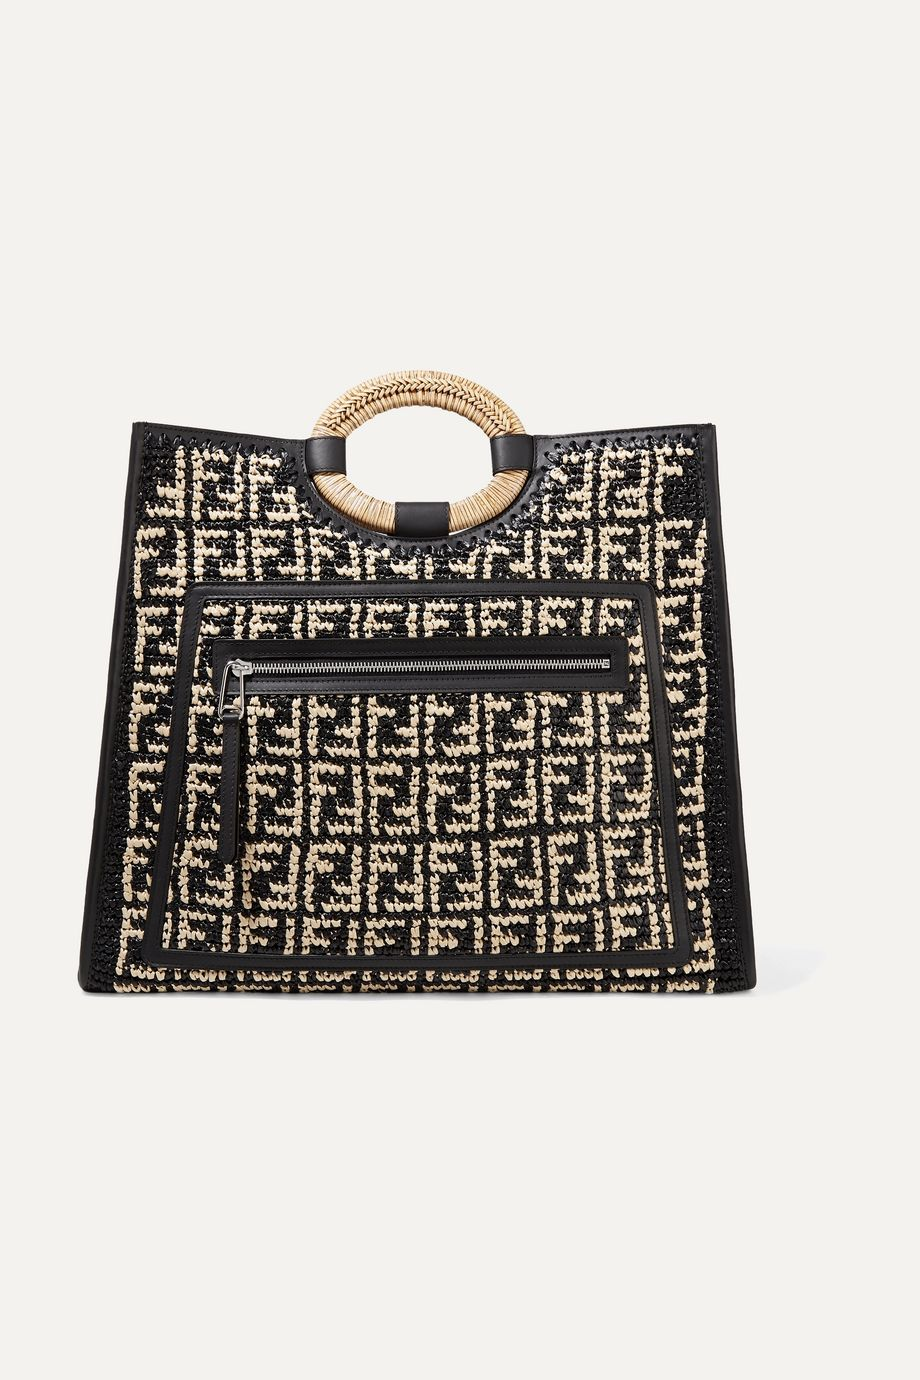 Fendi Runaway large leather-trimmed woven raffia tote